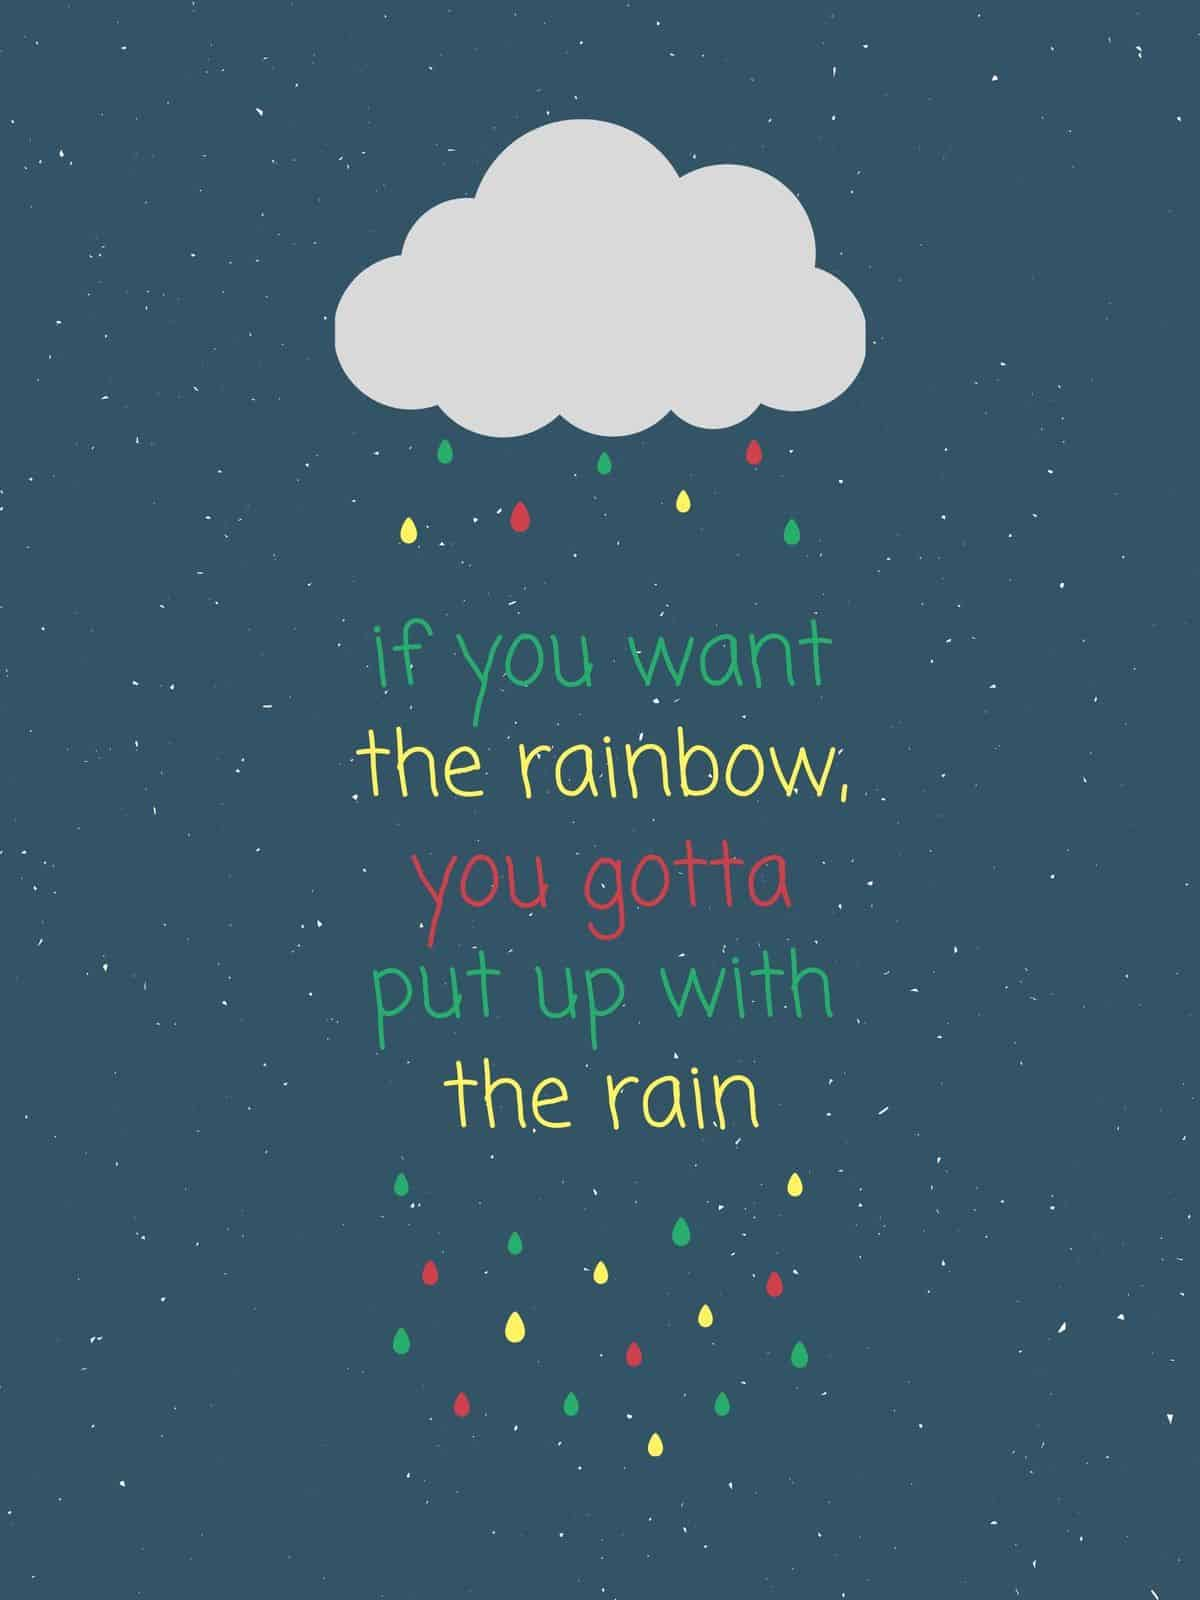 if you want the rainbow, you've got to put up with the rain